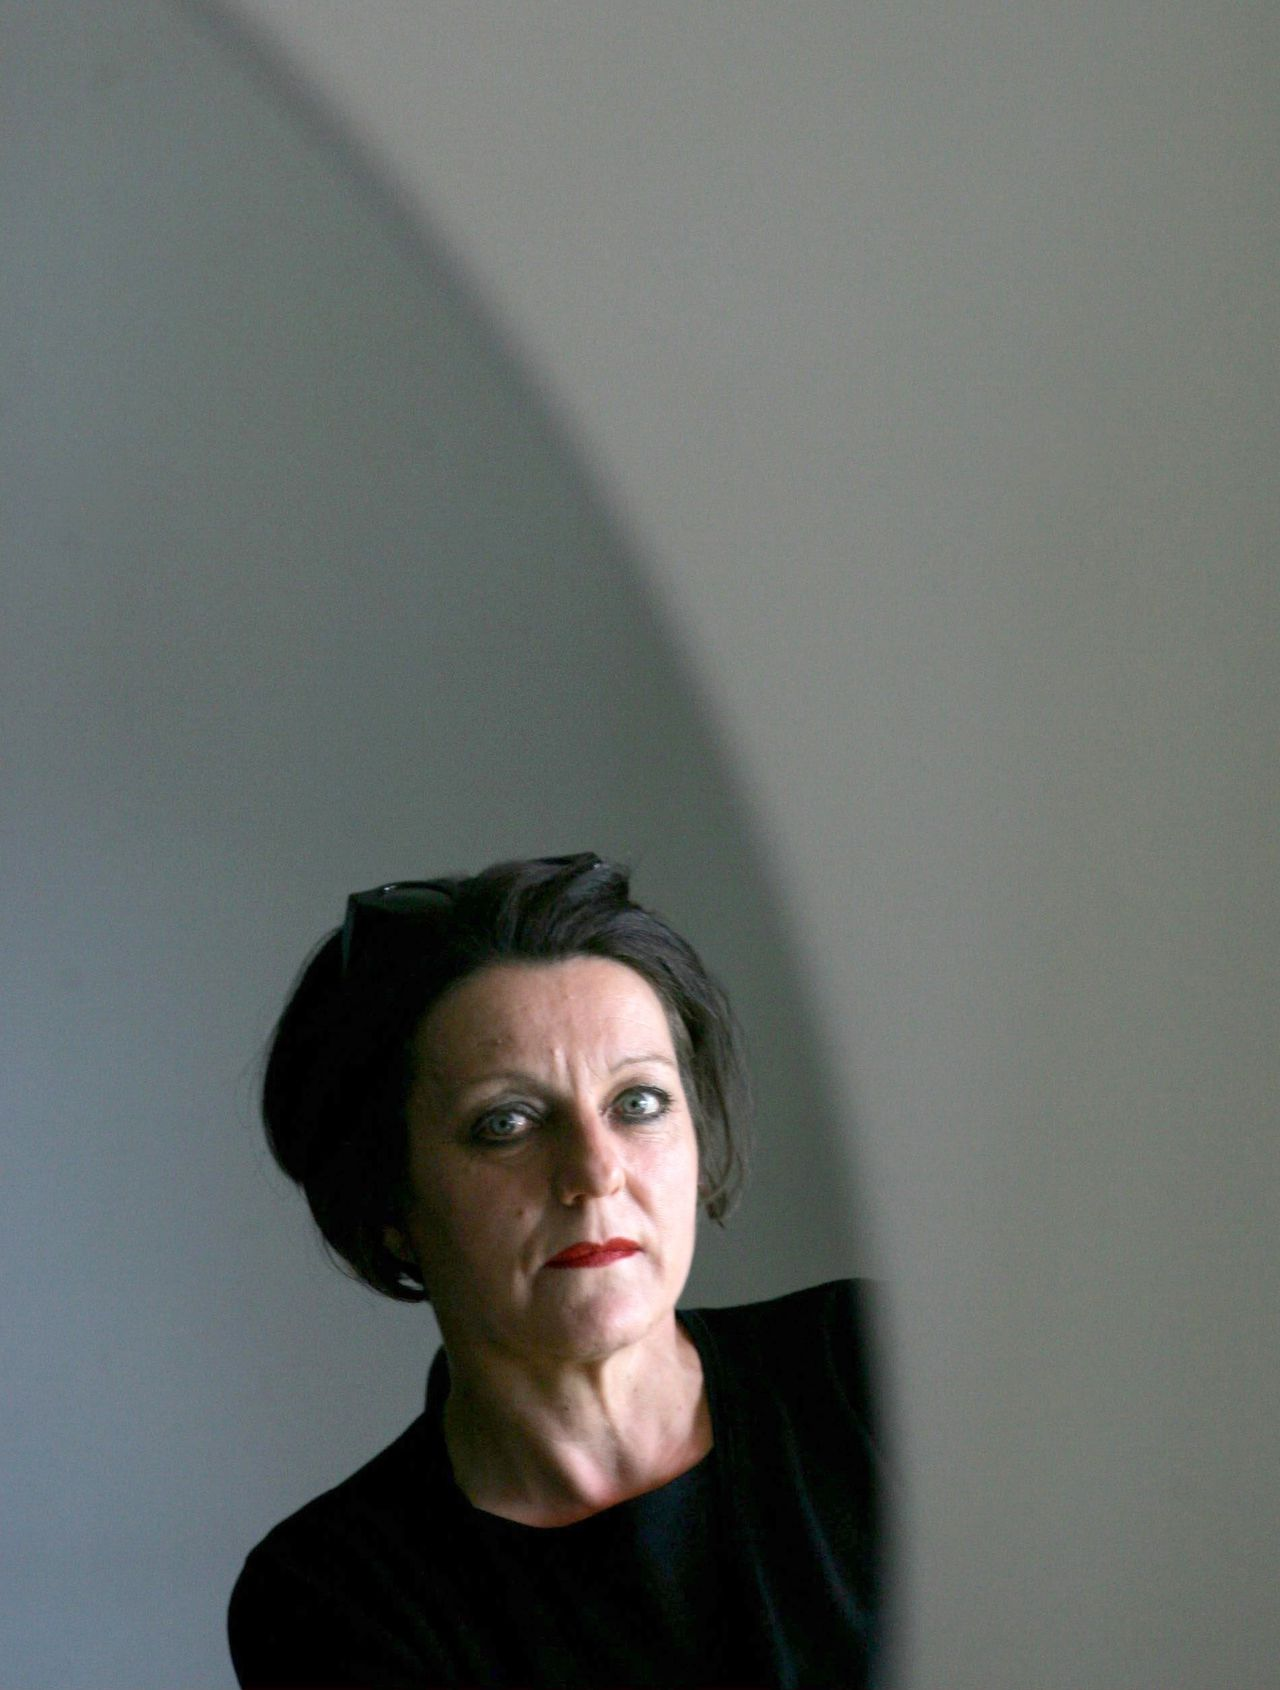 Romanian-born German writer Herta Mueller poses in this file picture taken May 19, 2005. Mueller won the 2009 Nobel prize for literature, the award committee said on October 8, 2009. Picture taken May 19, 2005. REUTERS/Jack Mikrut/Scanpix Sweden/Files (SWEDEN SOCIETY) SWEDEN OUT. NO COMMERCIAL OR EDITORIAL SALES IN SWEDEN